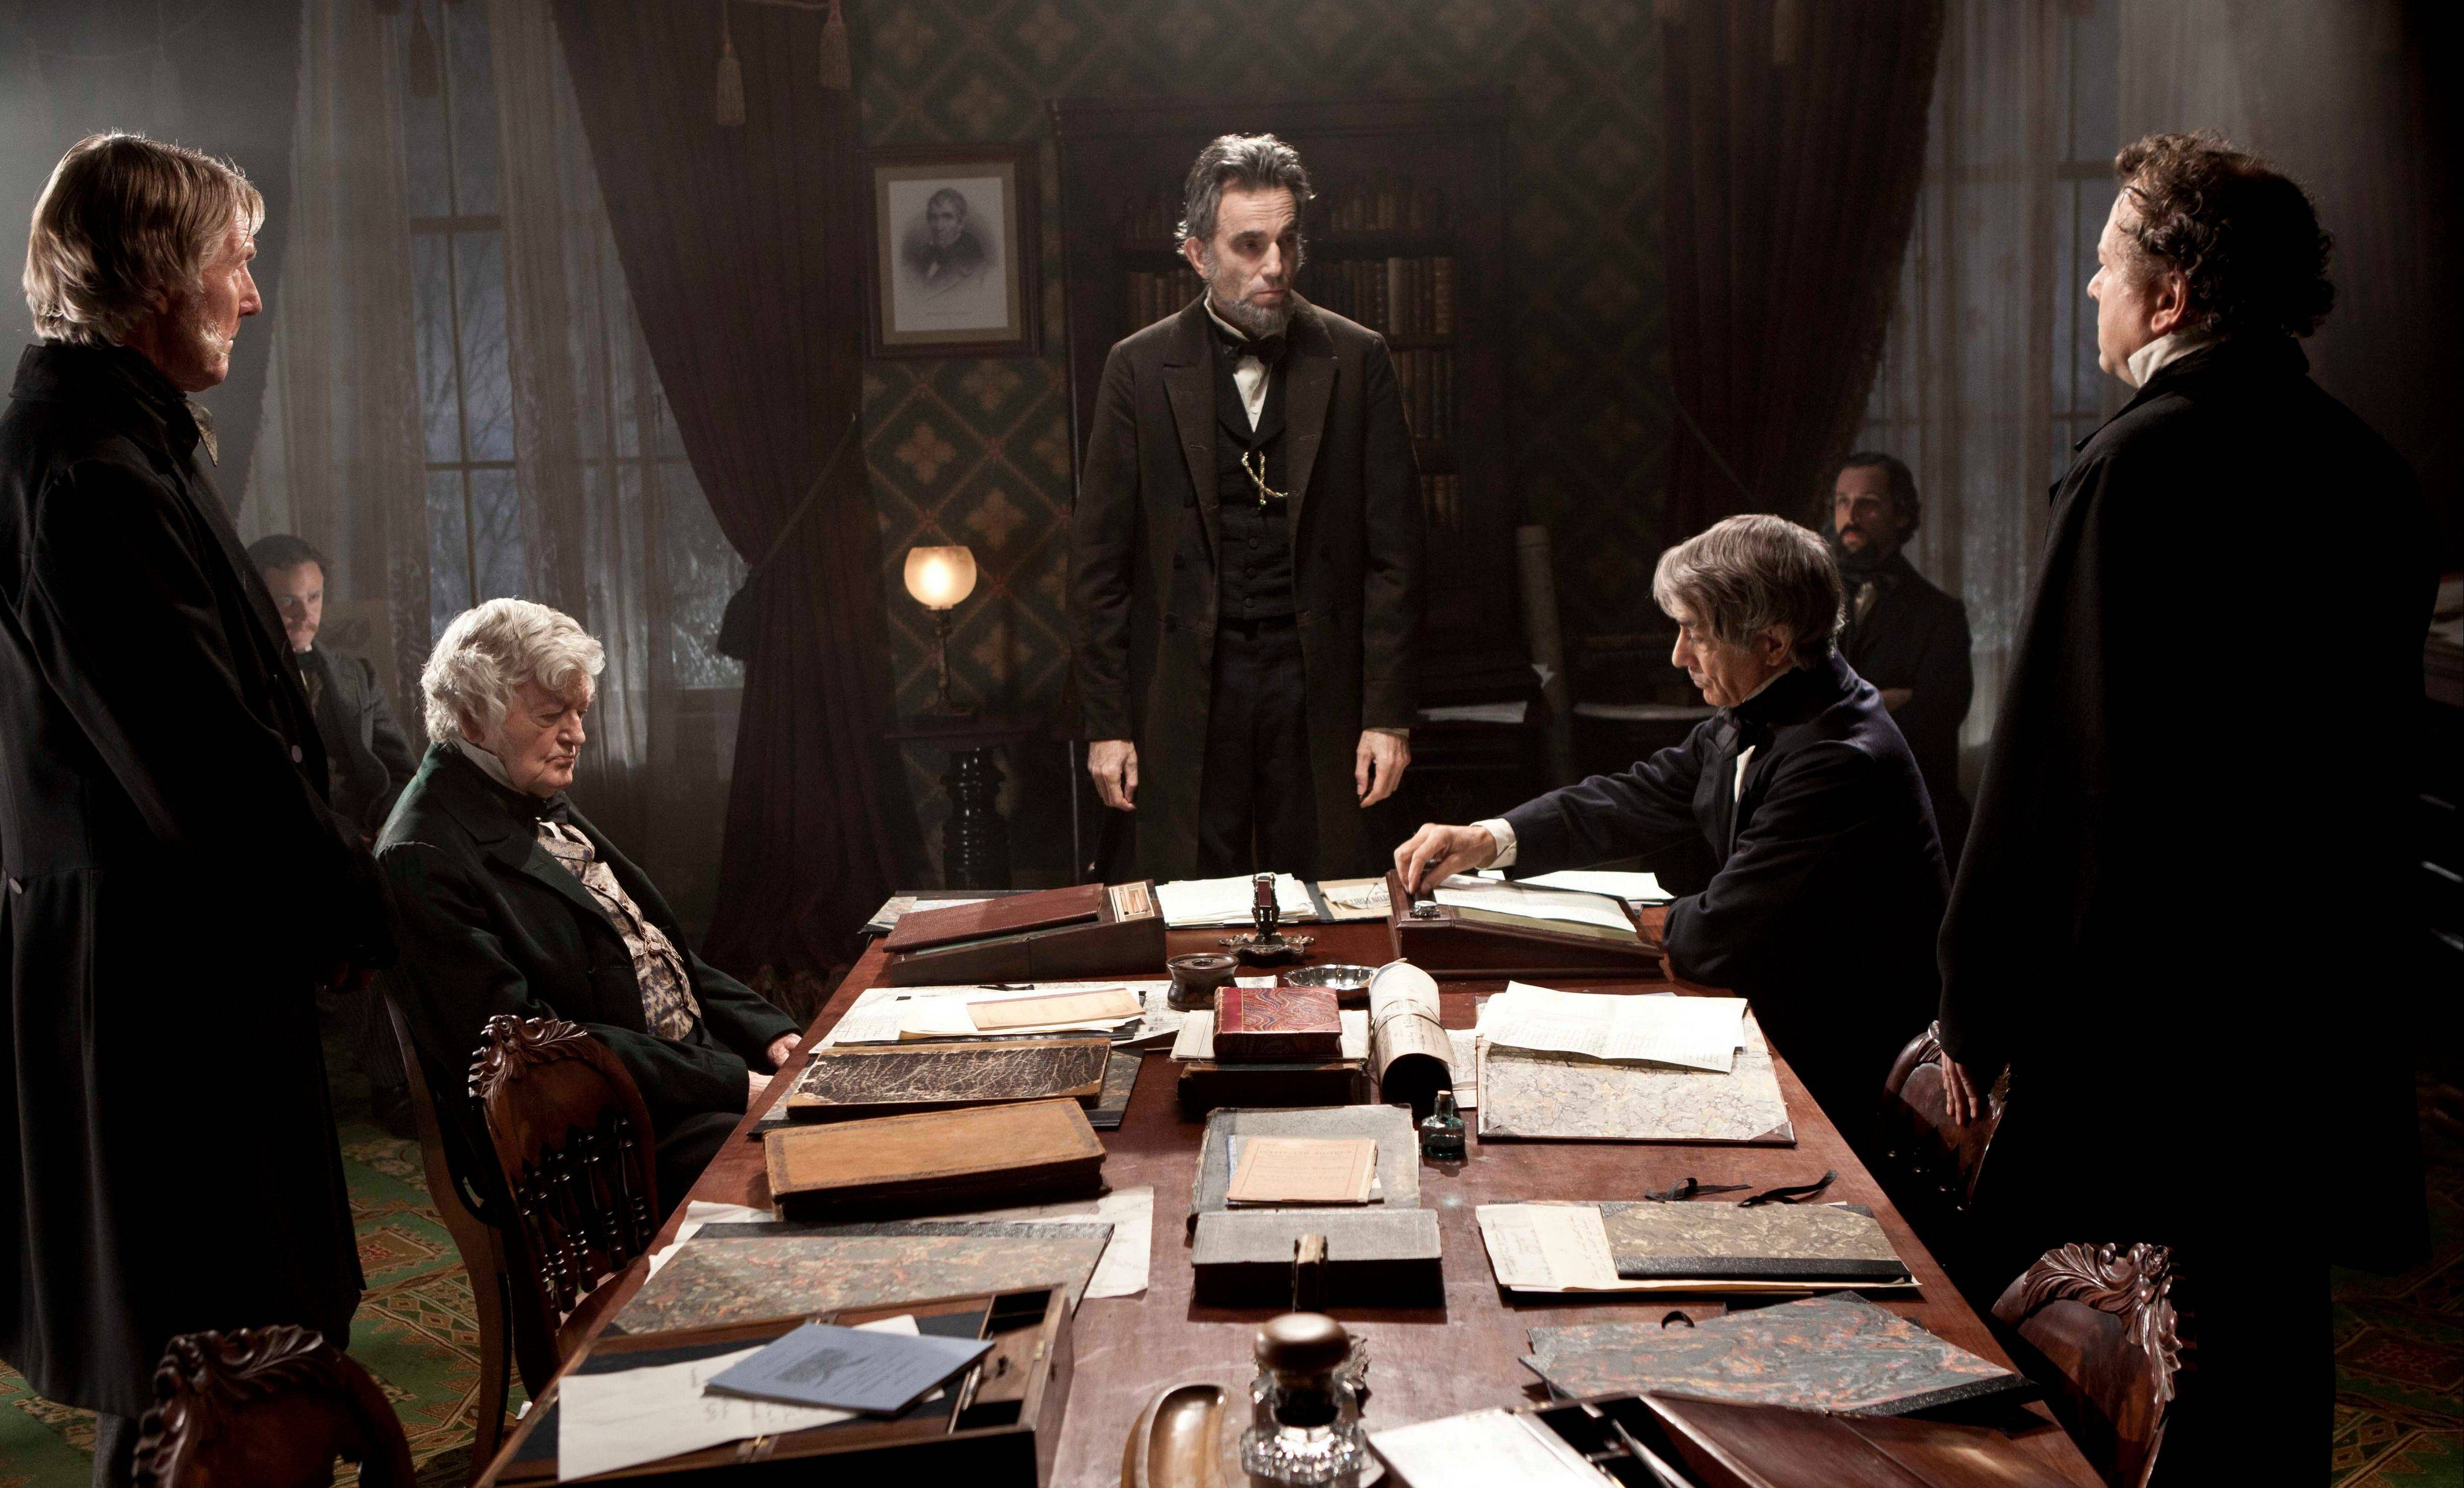 Daniel Day-Lewis had to think about Lincoln not only as a towering historical figure, but also as a foreign statesman whose portrayal would be a sensitive matter for U.S. audiences that revere the president.